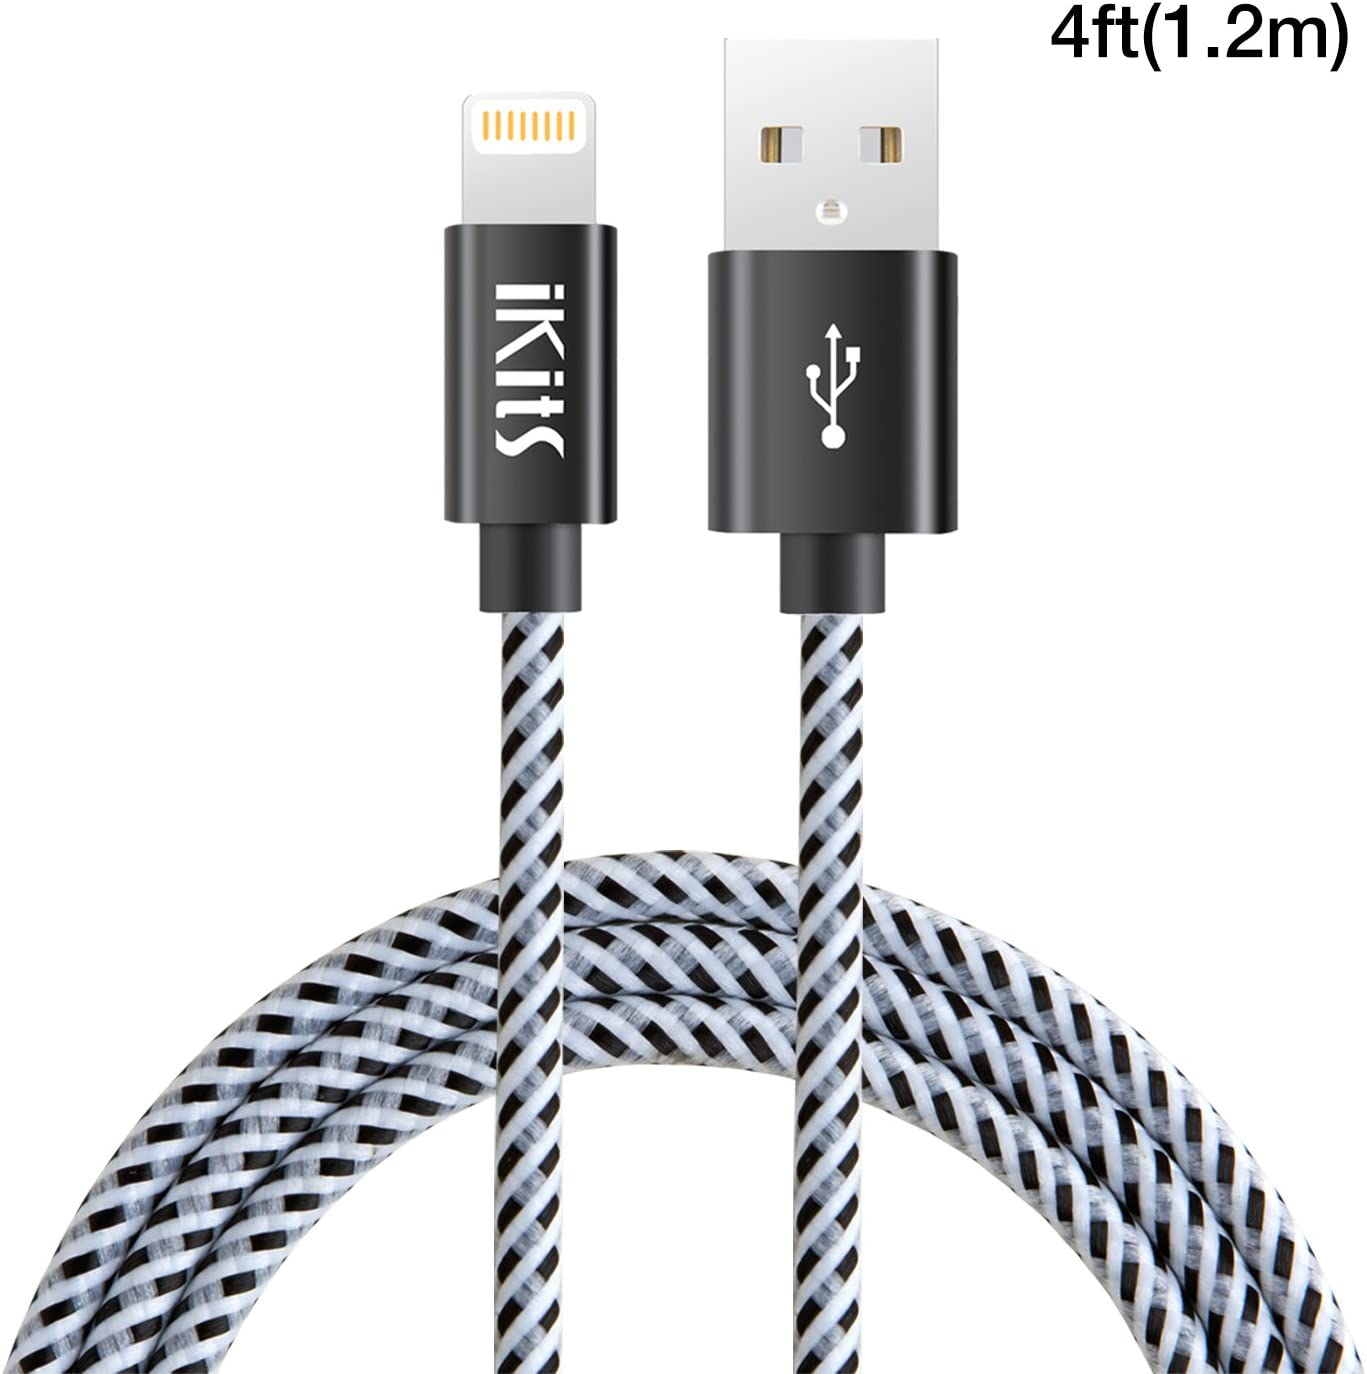 Fast Quick Charging MicroUSB Cable works with Alcatel OneTouch Hero is 5ft//1.5M allows fast charging Speeds!